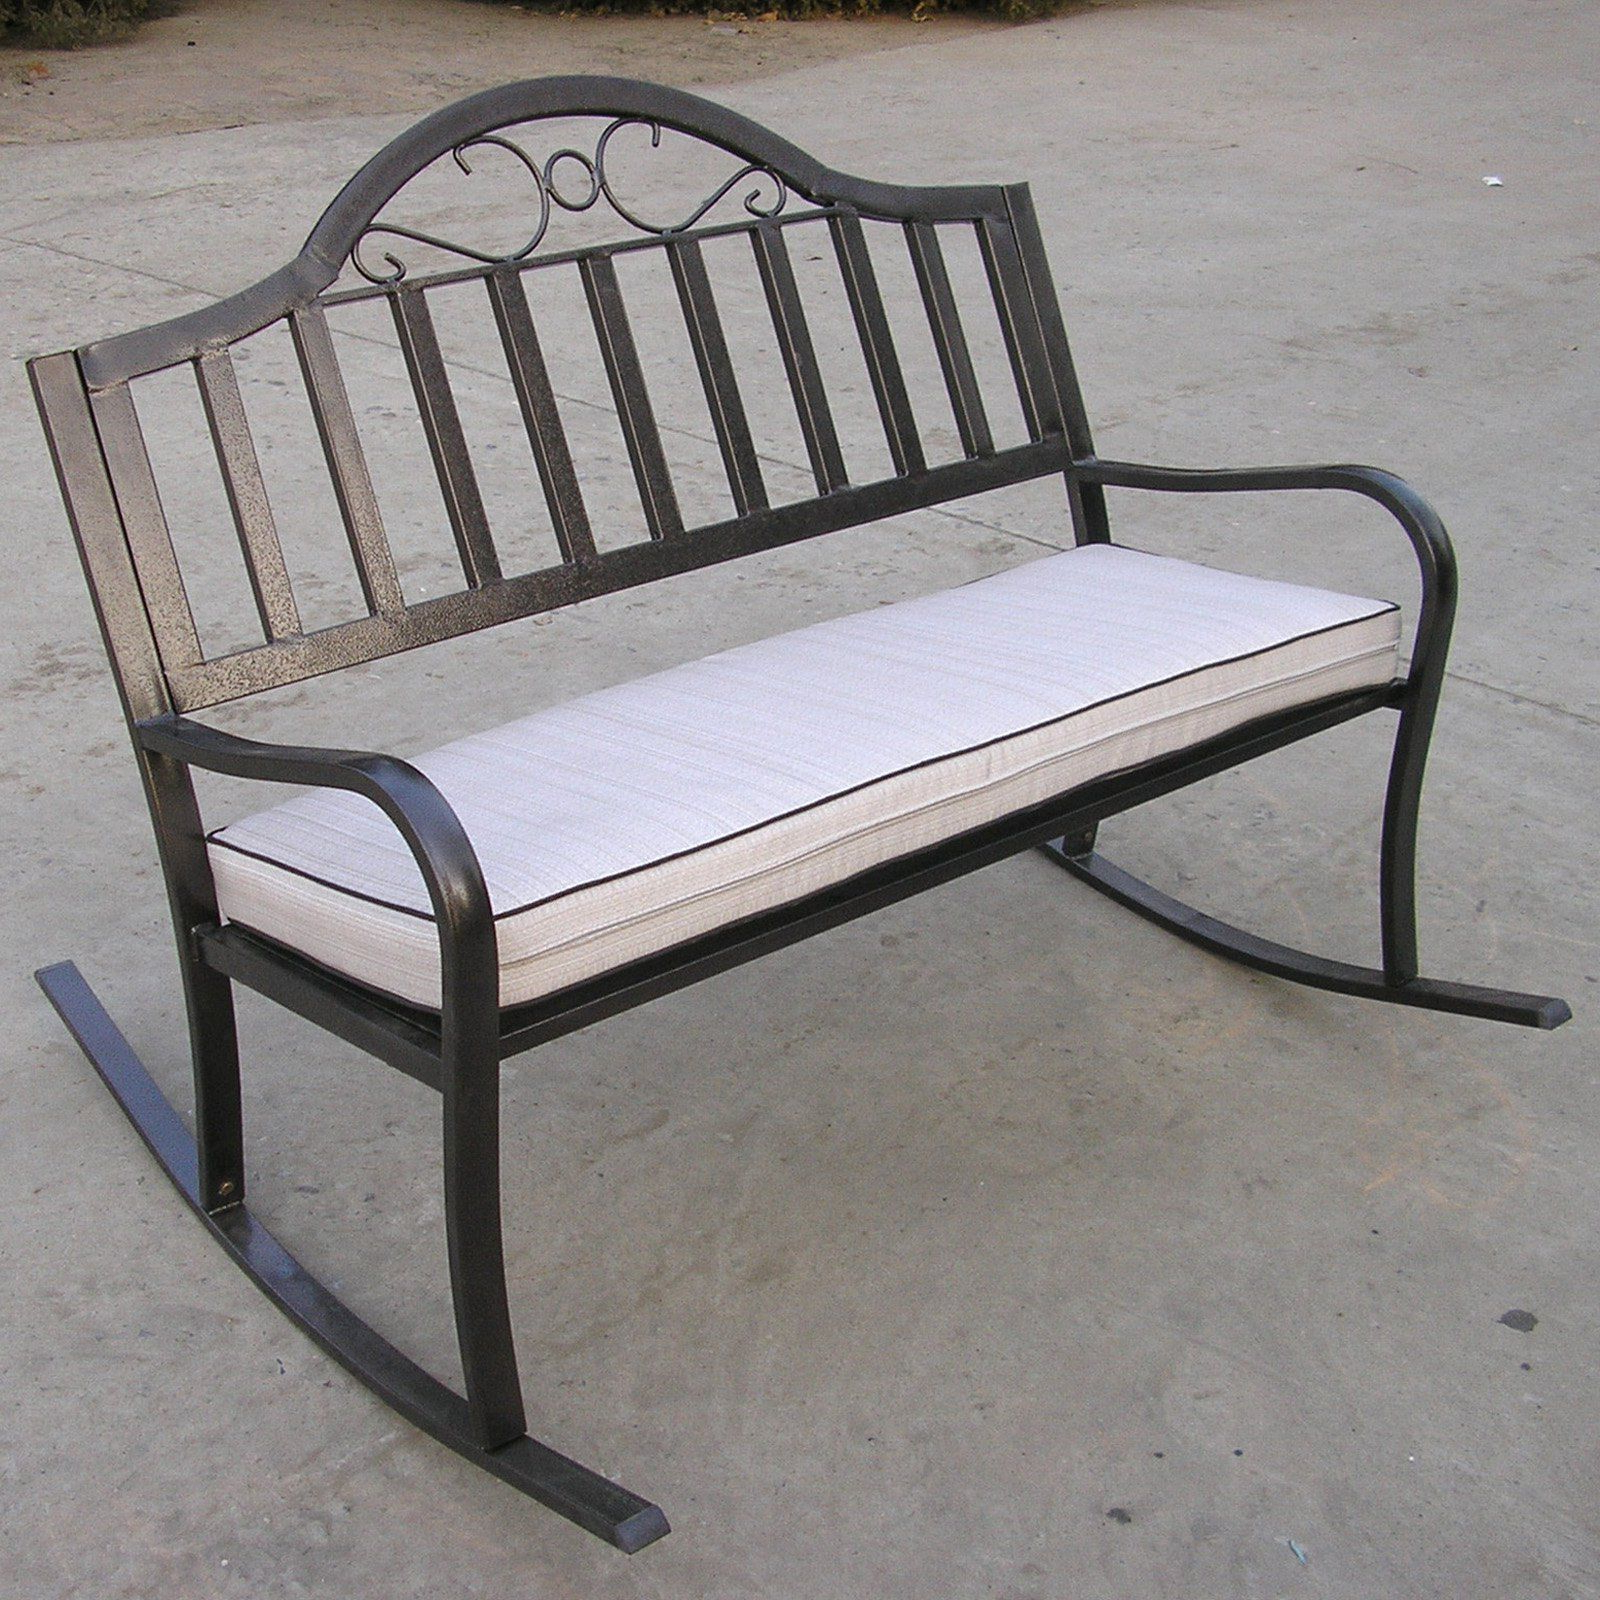 Outdoor Oakland Living Rochester 50 In. Iron Rocking Bench In Recent Rocking Benches With Cushions (Gallery 6 of 30)